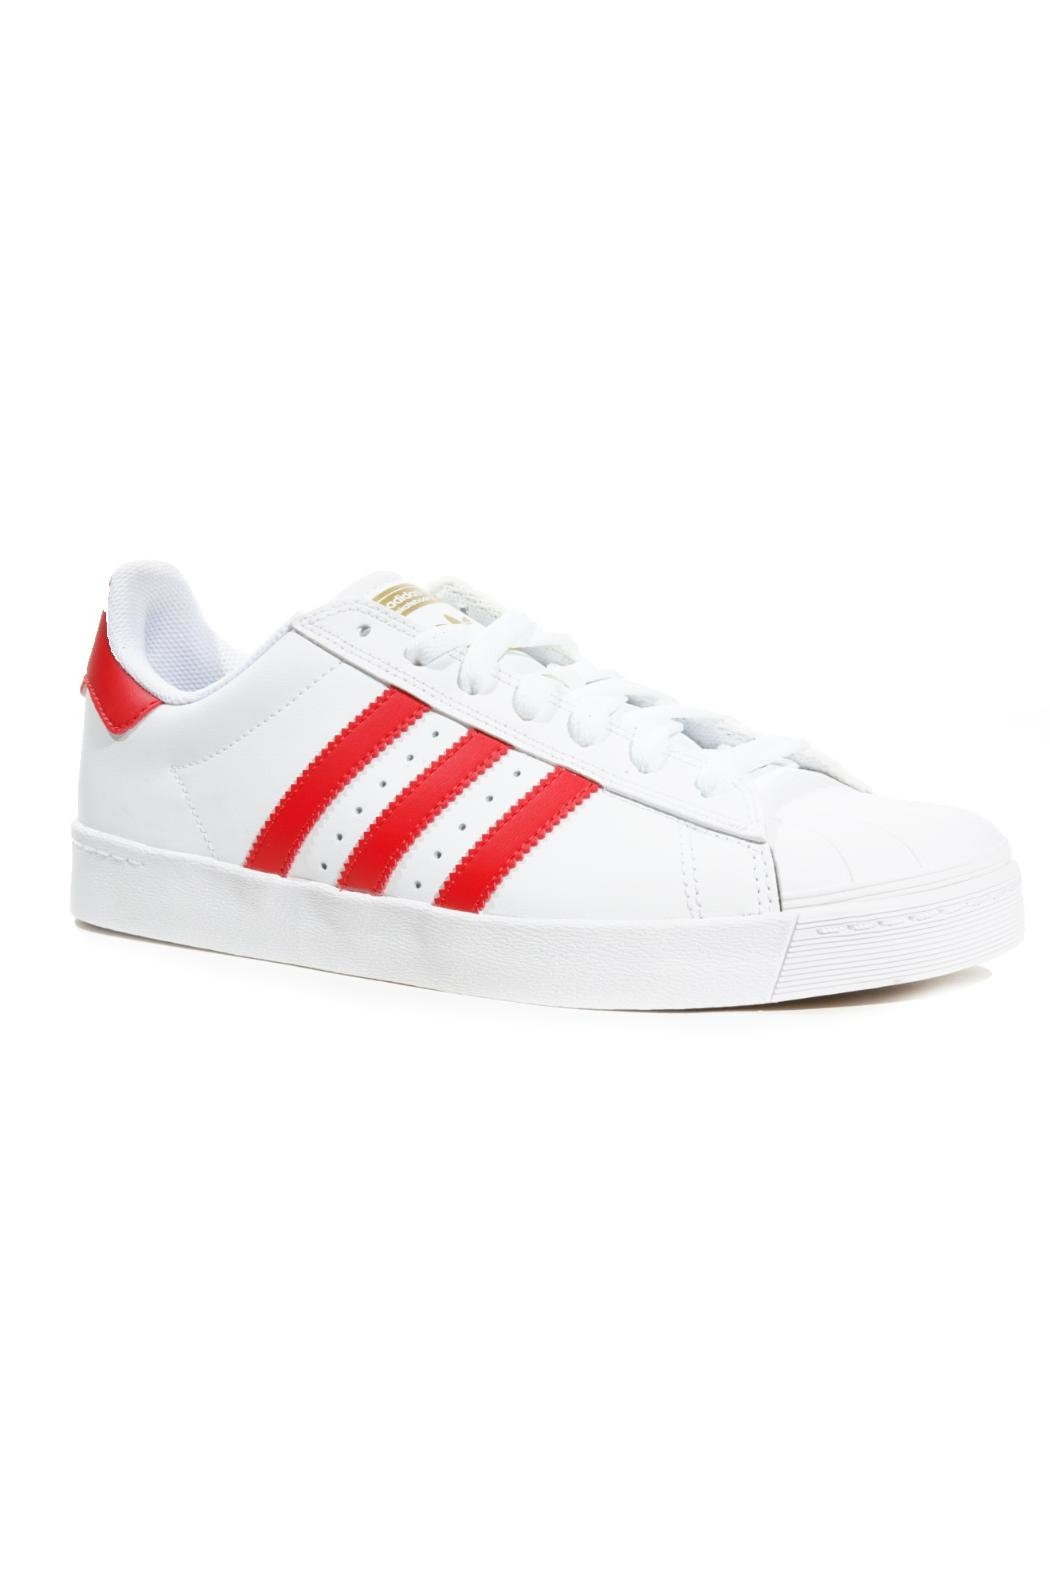 adidas White/red Superstar Adidas - Side Cropped Image